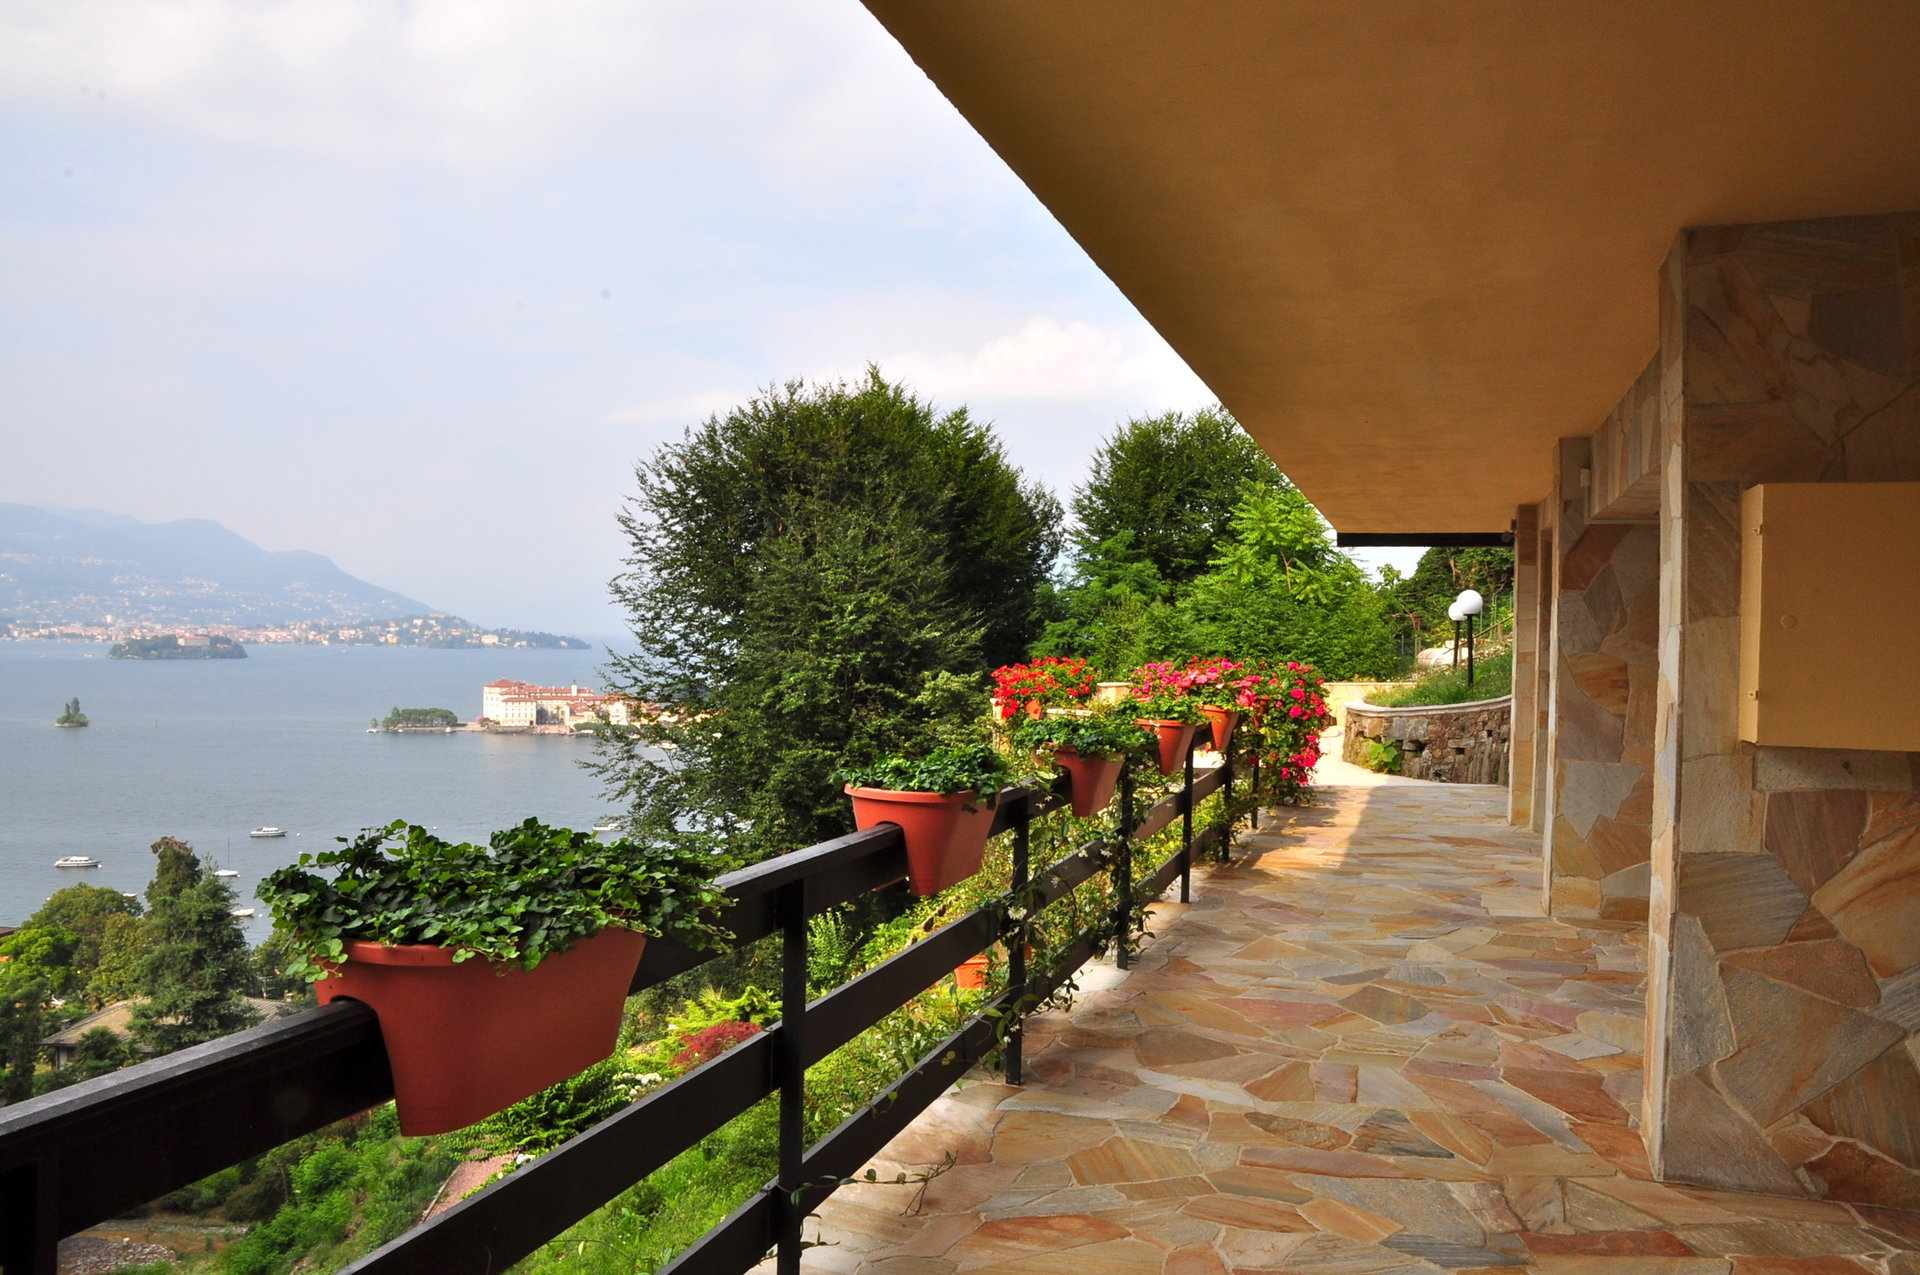 Villa for sale in Stresa with park and view on Borromean islands - balcony view